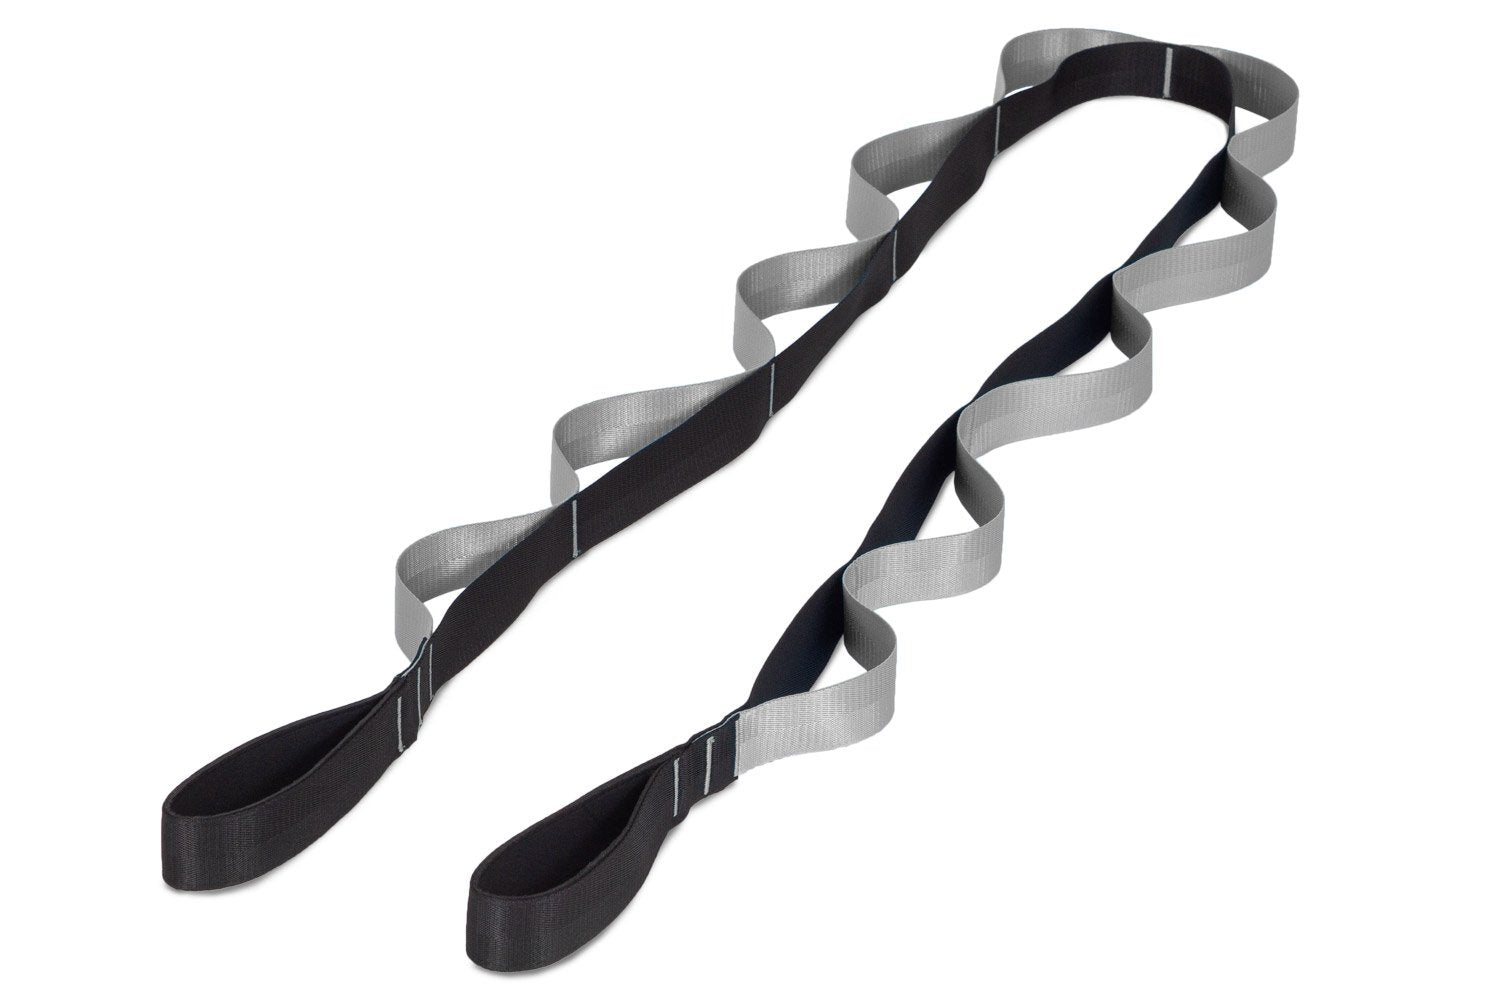 Black-Grey Multi-Loop Stretching Strap